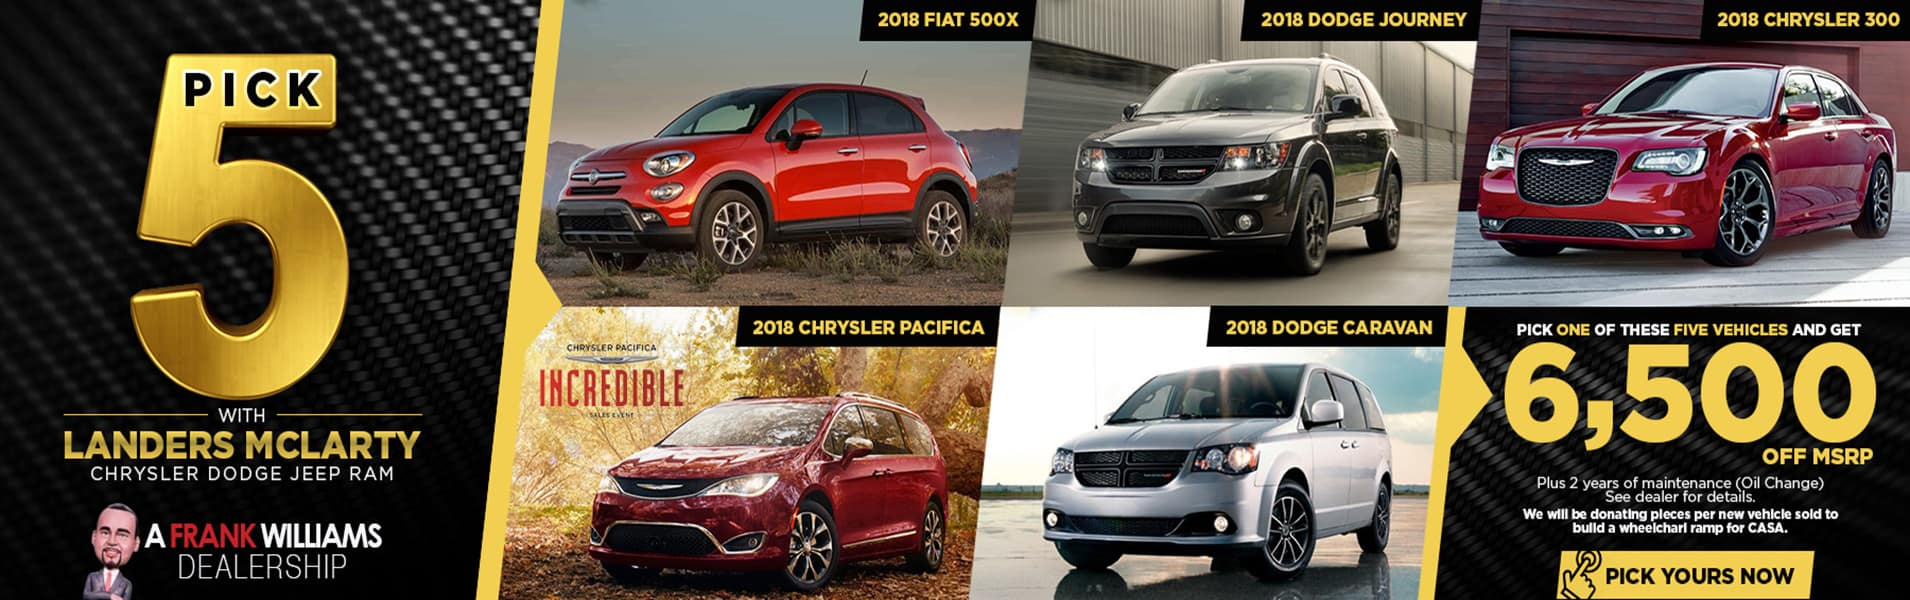 Good Pick 1 Of These 5 Vehicles For $6,500 Off